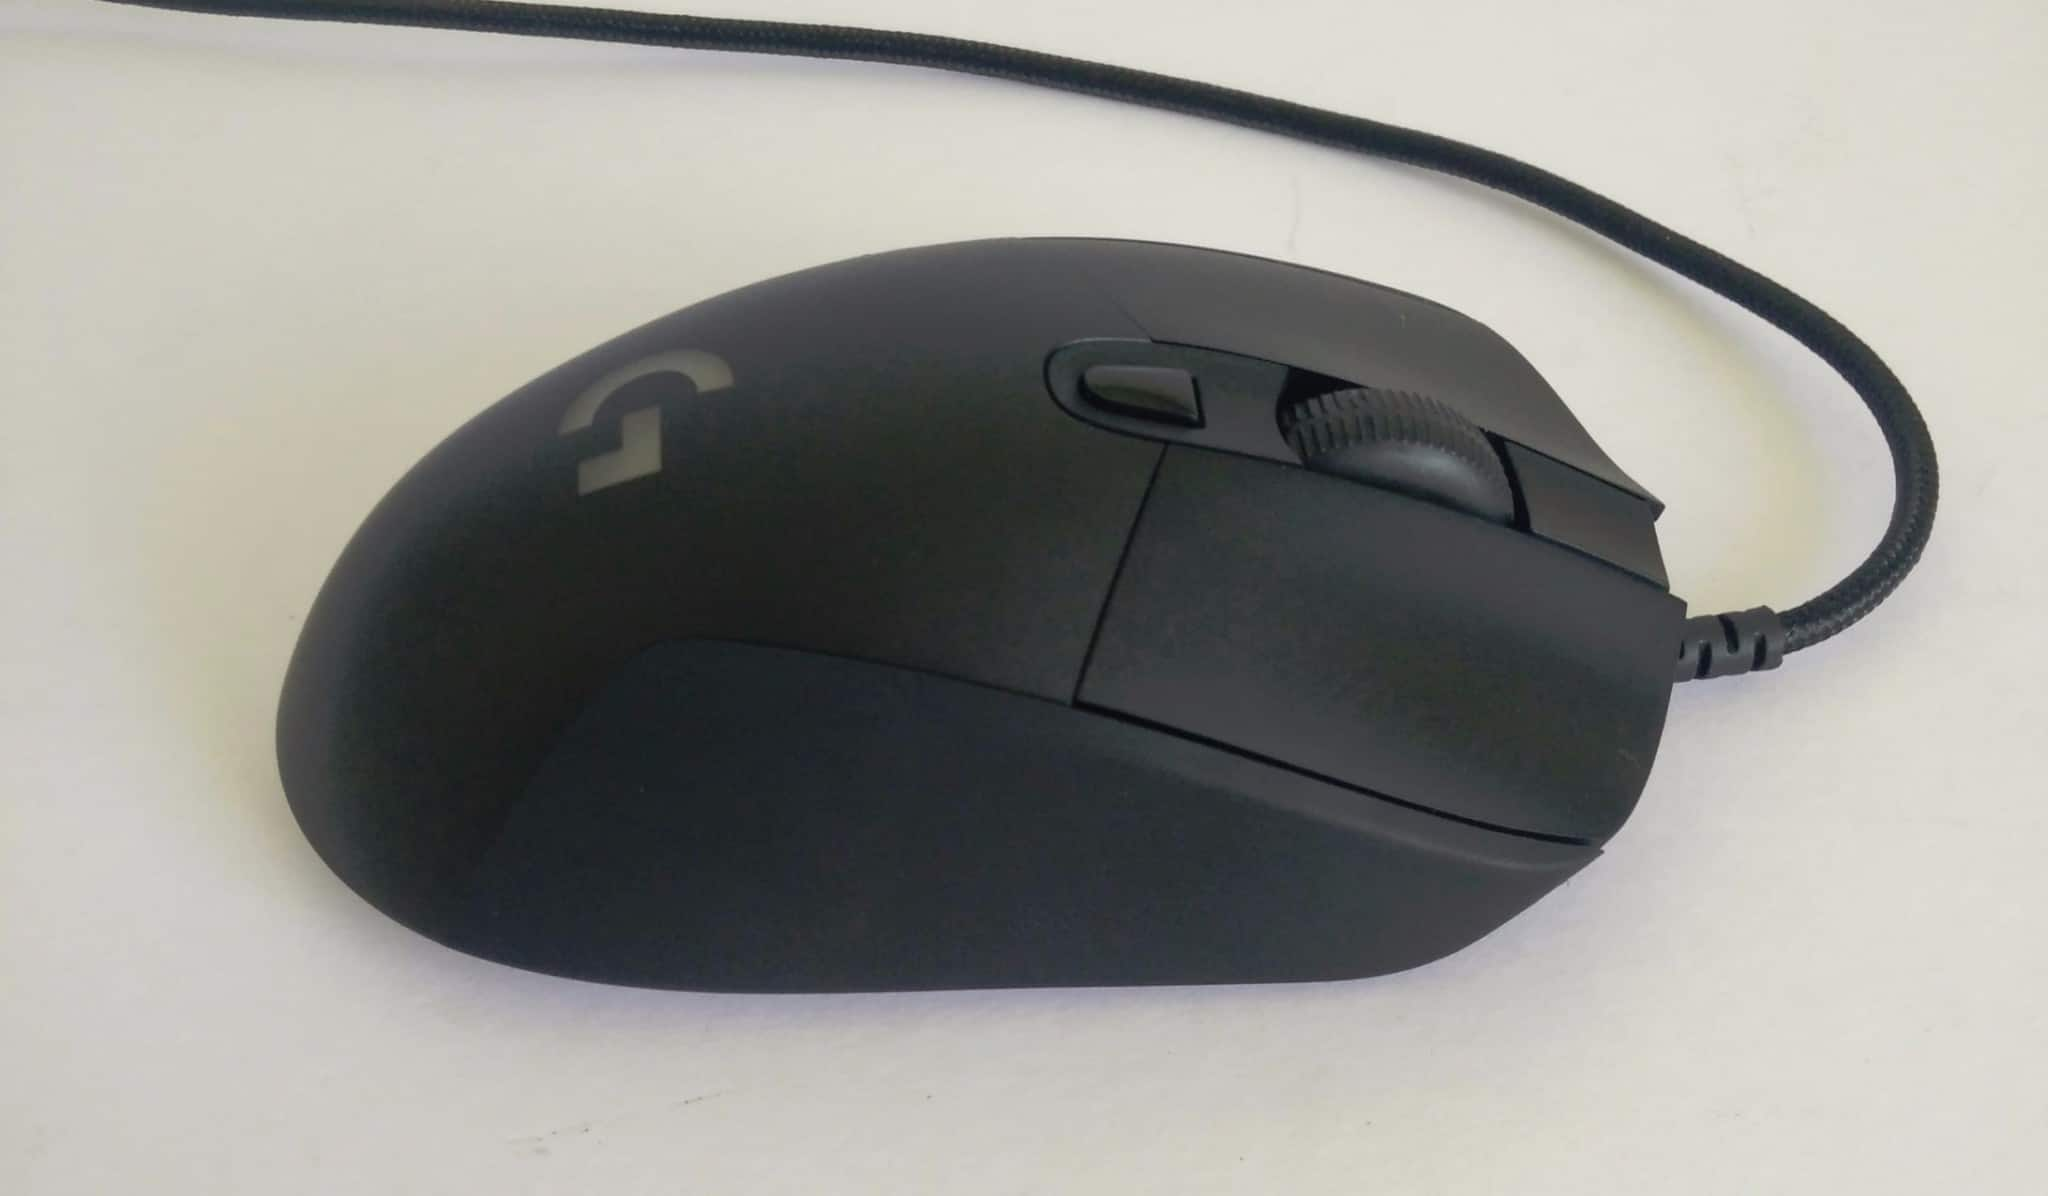 logitech-g403-Photos-12 Logitech G403 Prodigy Wired Gaming Mouse Review